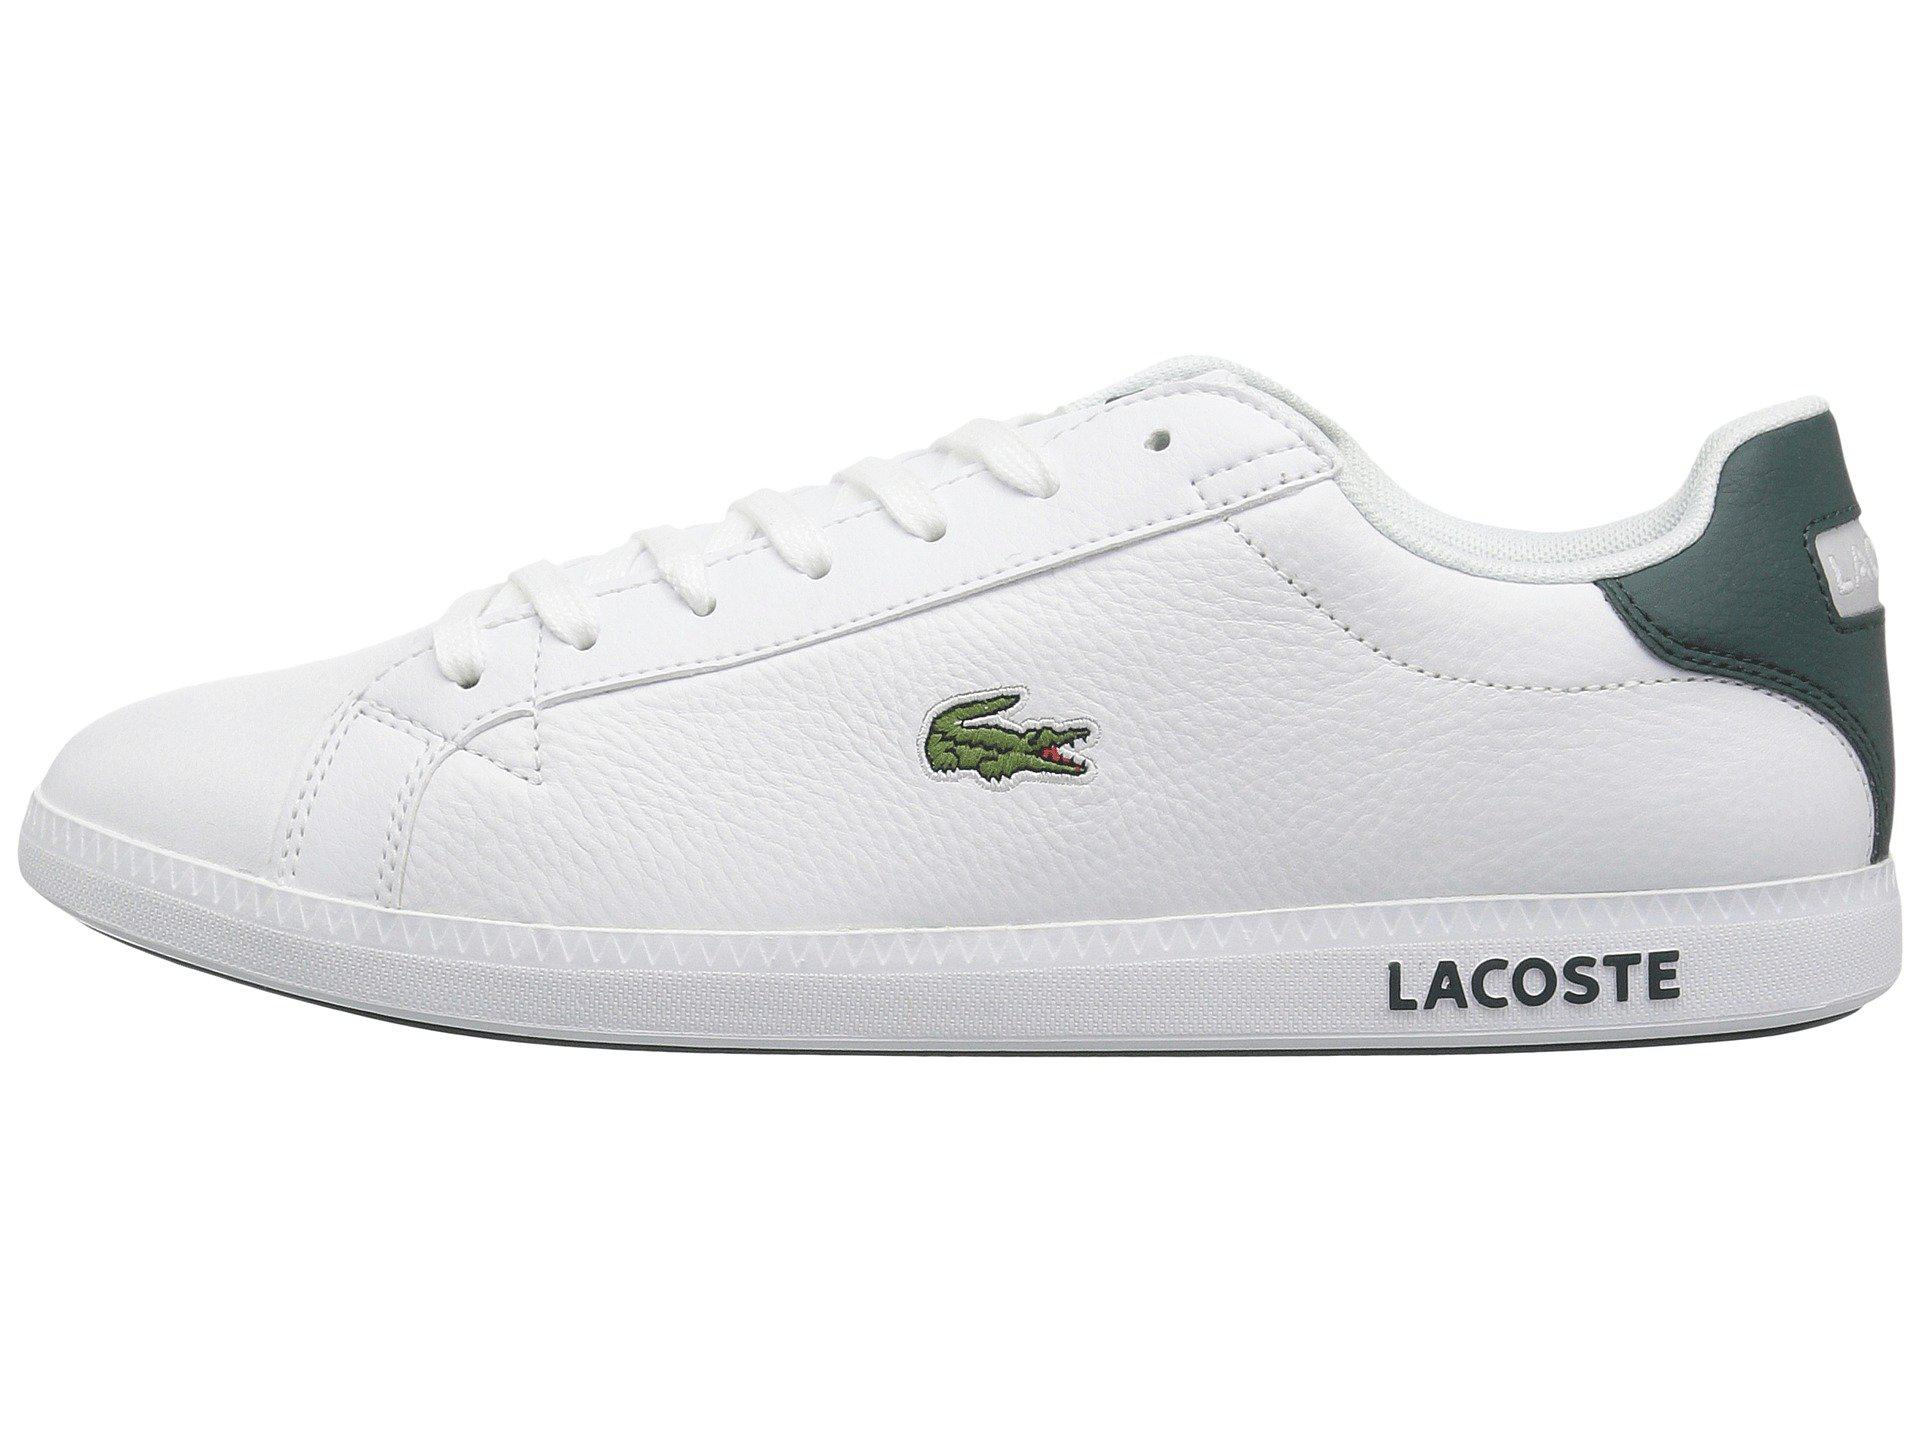 91a22a96672 Lyst - Lacoste Graduate Lcr3 118 1 (white dark Green) Men s Shoes in White  for Men